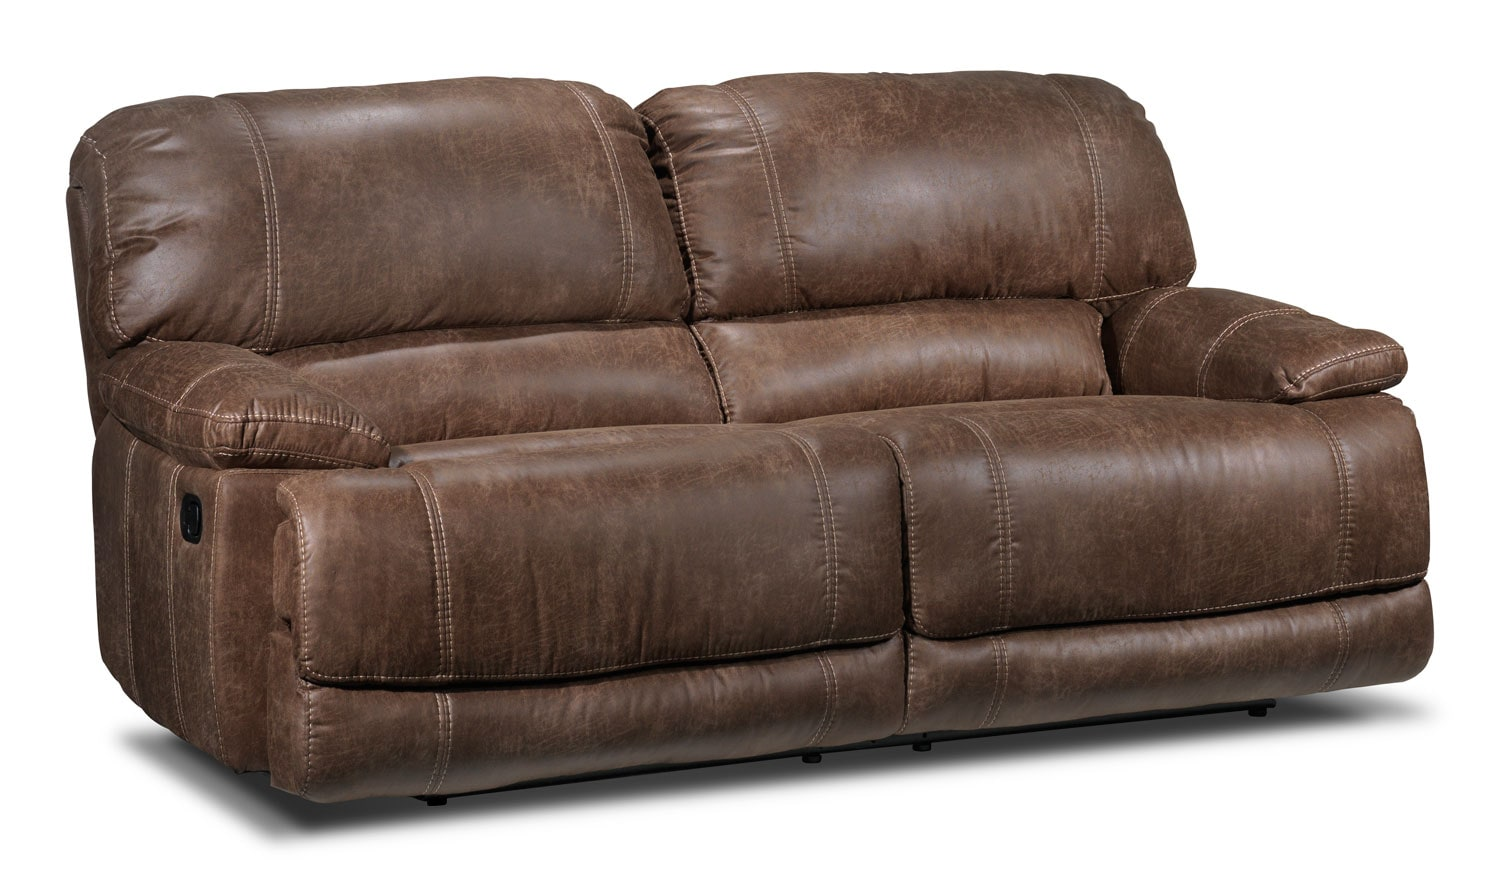 Living Room Furniture - Durango Reclining Sofa - Saddle Brown